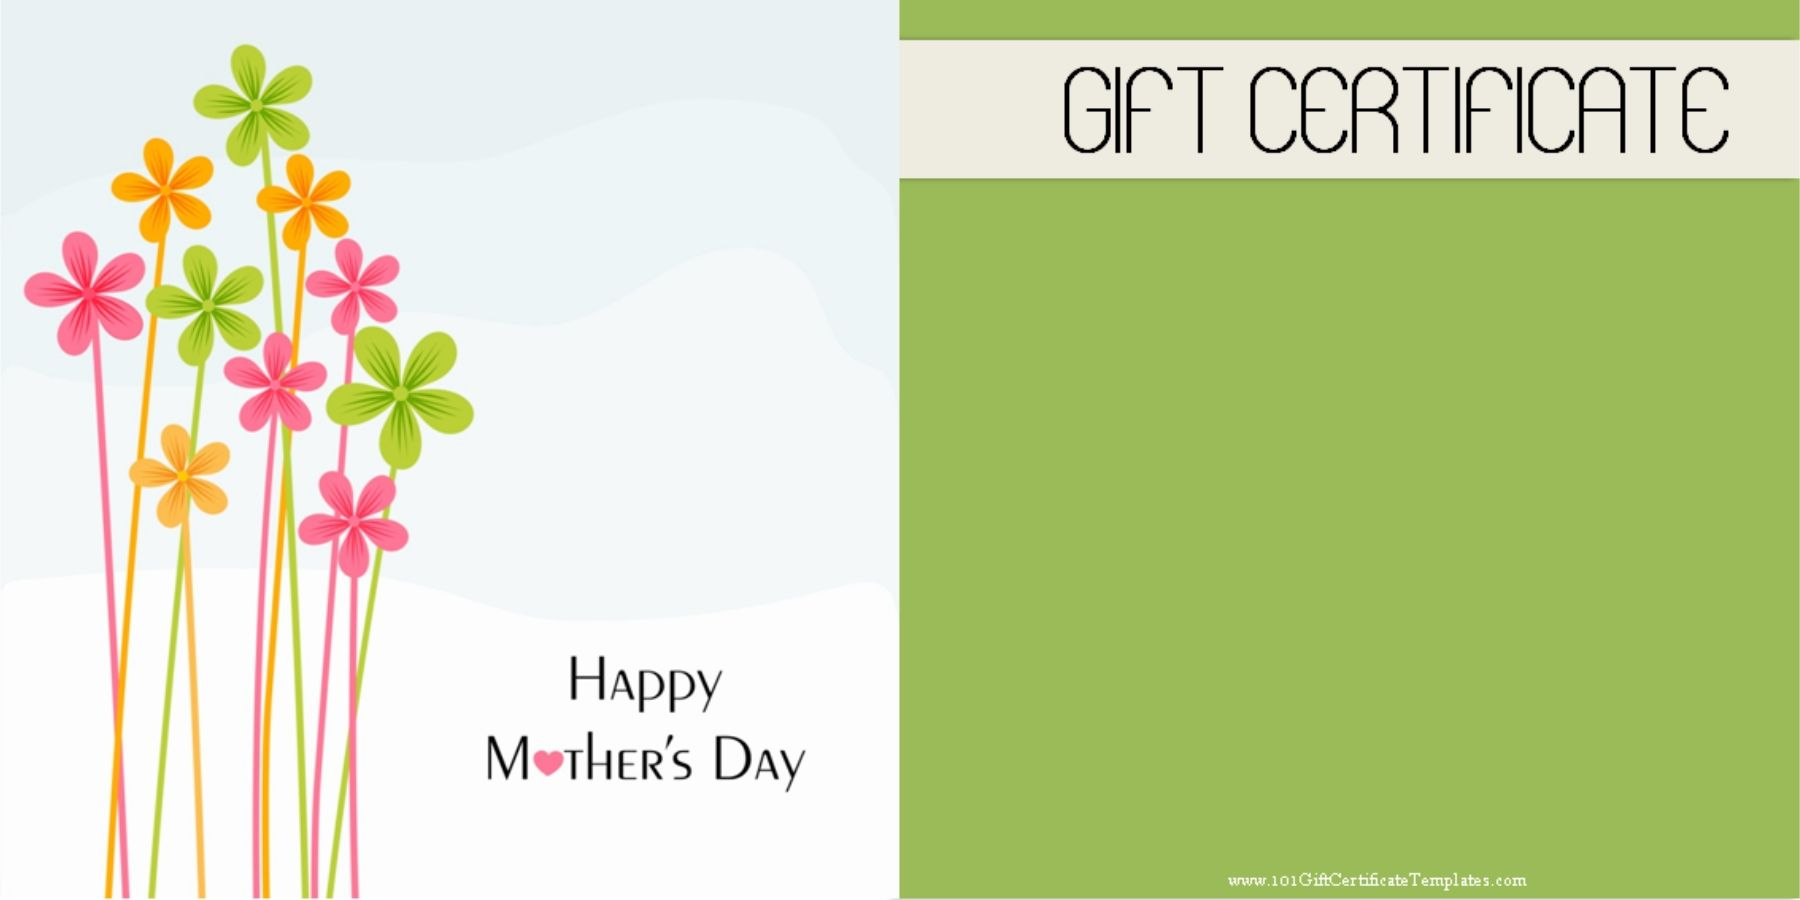 Mothers Day Gift Certificate Mothers Day Gift Certificate